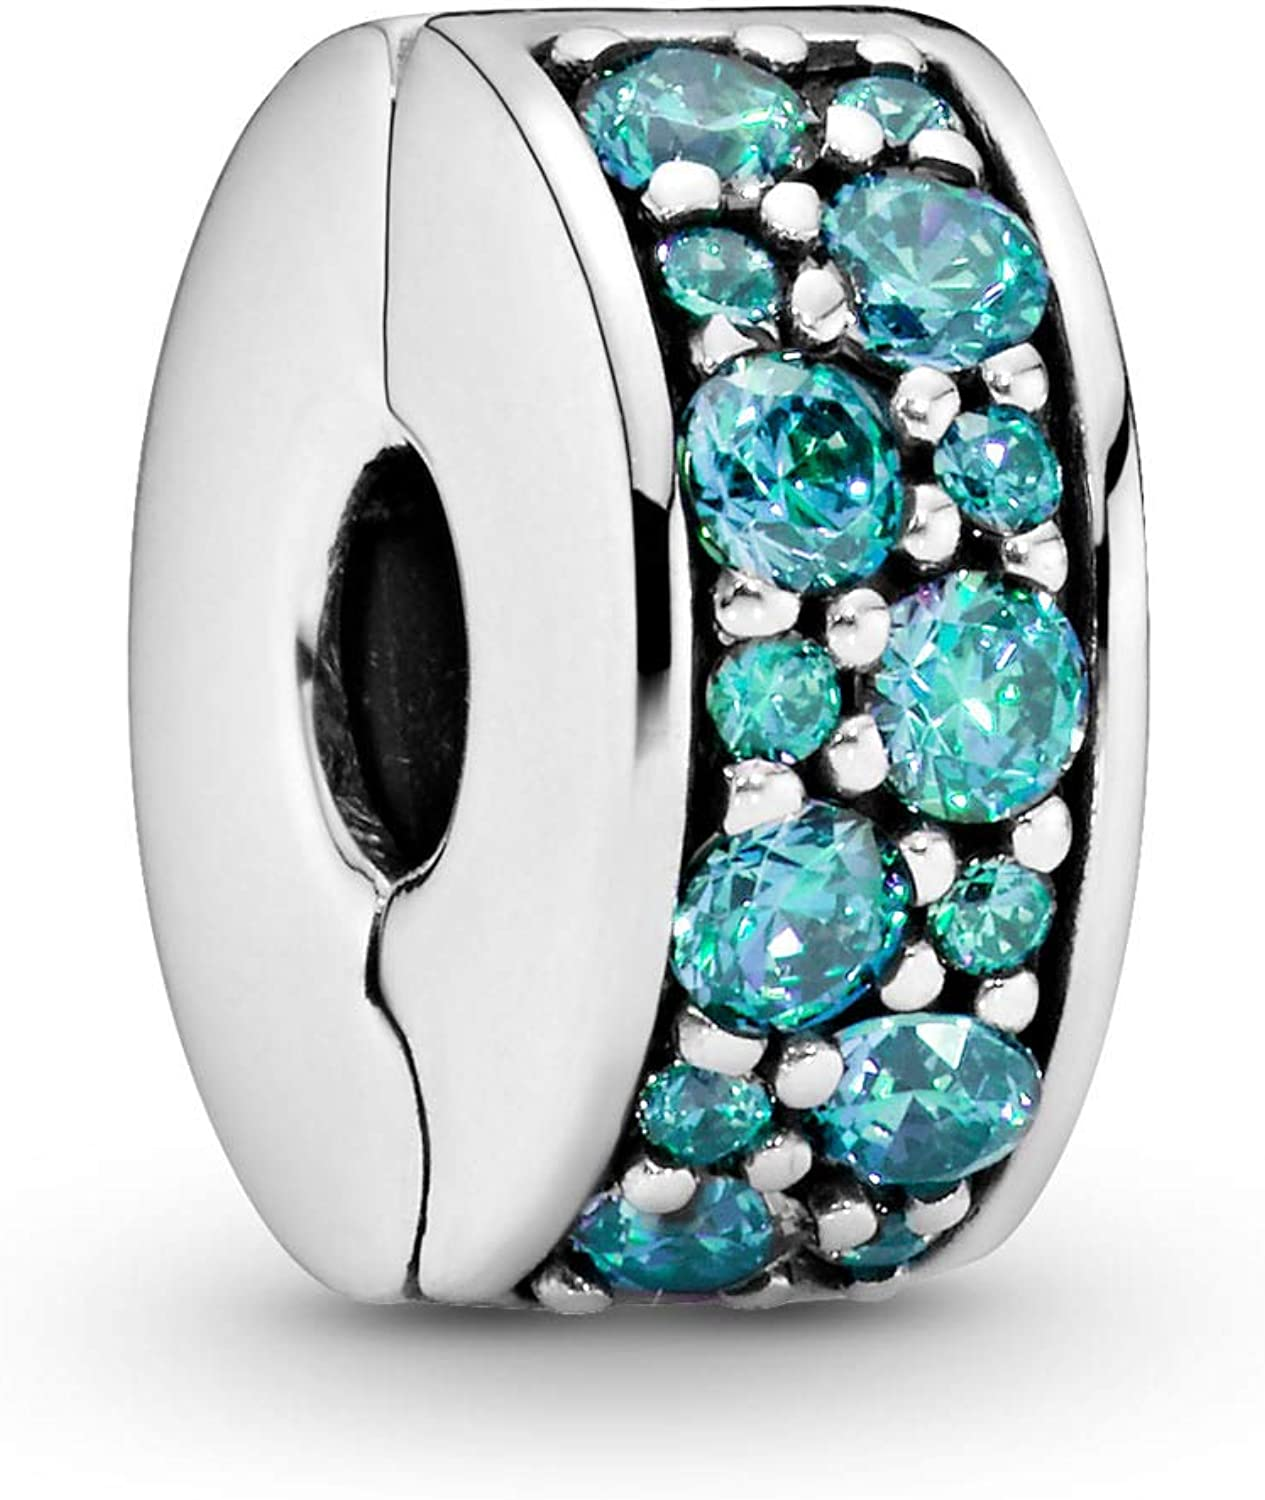 Amazon Com Pandora Jewelry Teal Pave Clip Cubic Zirconia Charm In Sterling Silver Jewelry